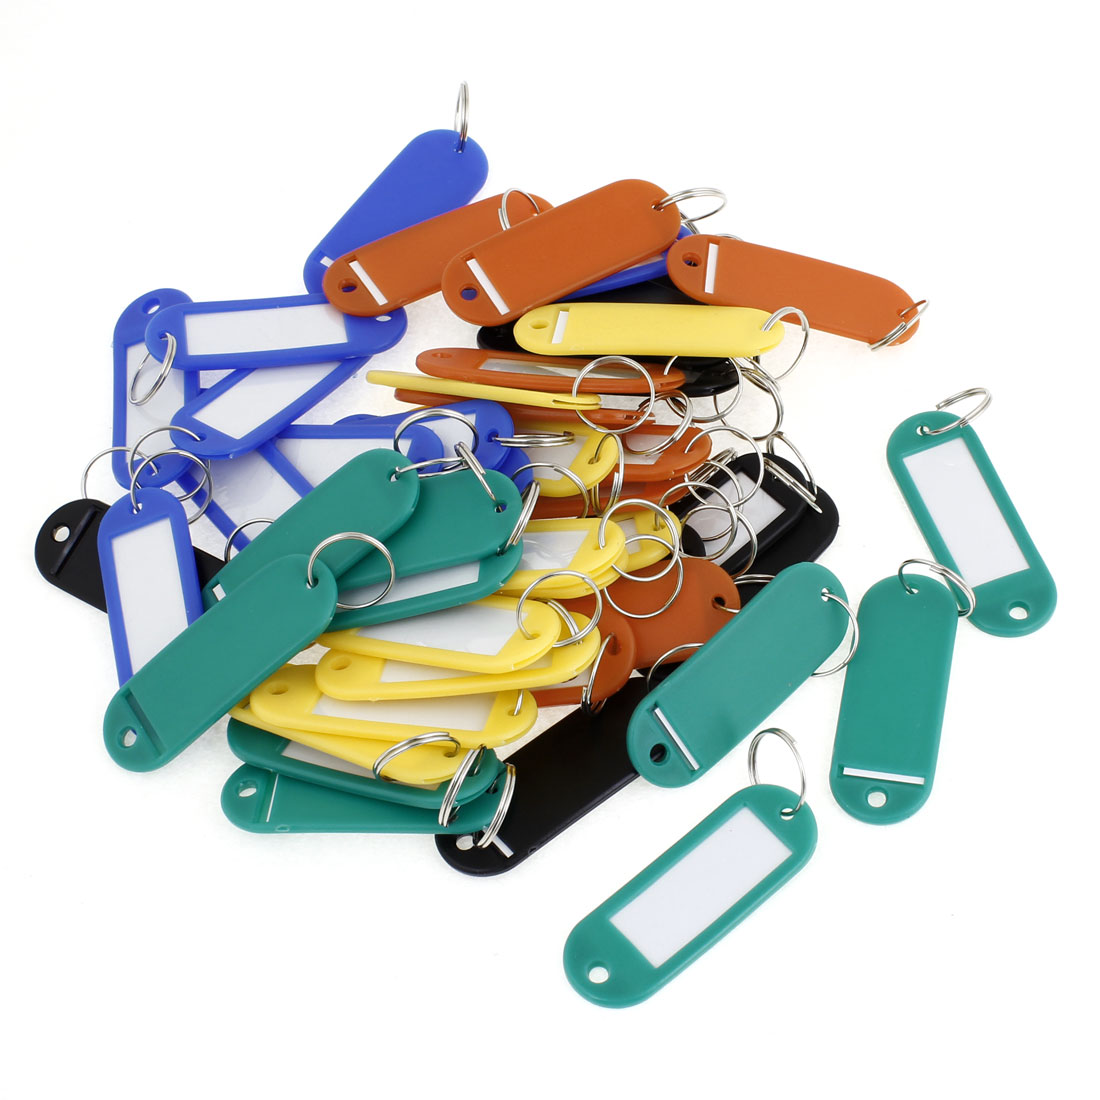 50 Pcs Metal Keychain Assorted Color Plastic Name Tag Badge Clip Holder Keychain